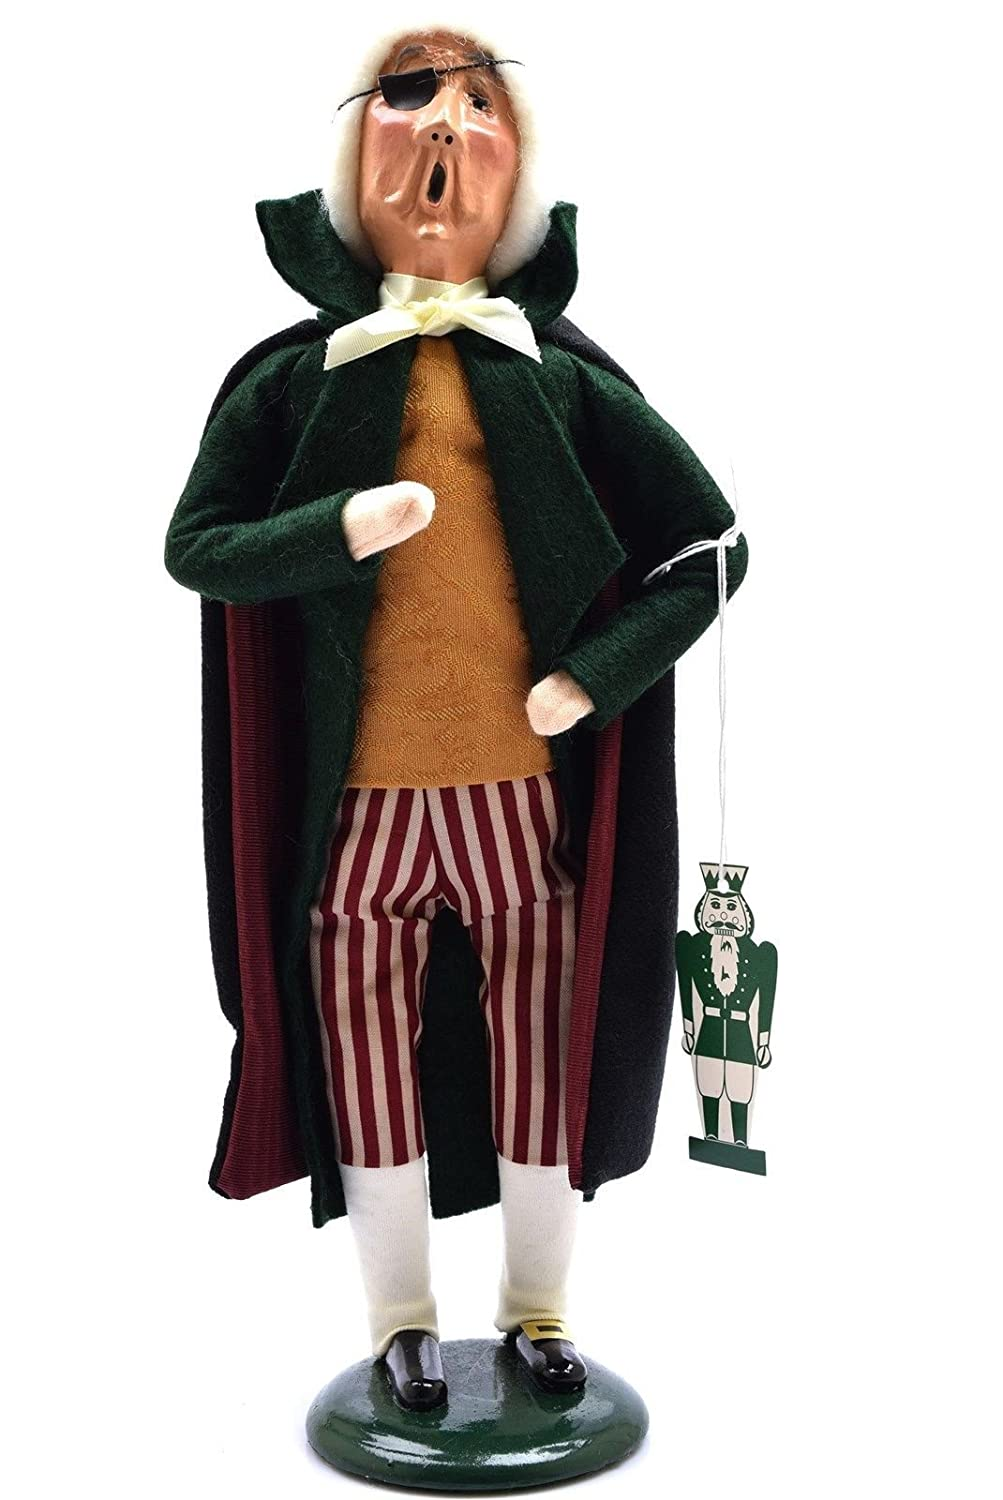 Byers Choice Caroler Drosselmeir 1996 First Edition Nutcracker Series